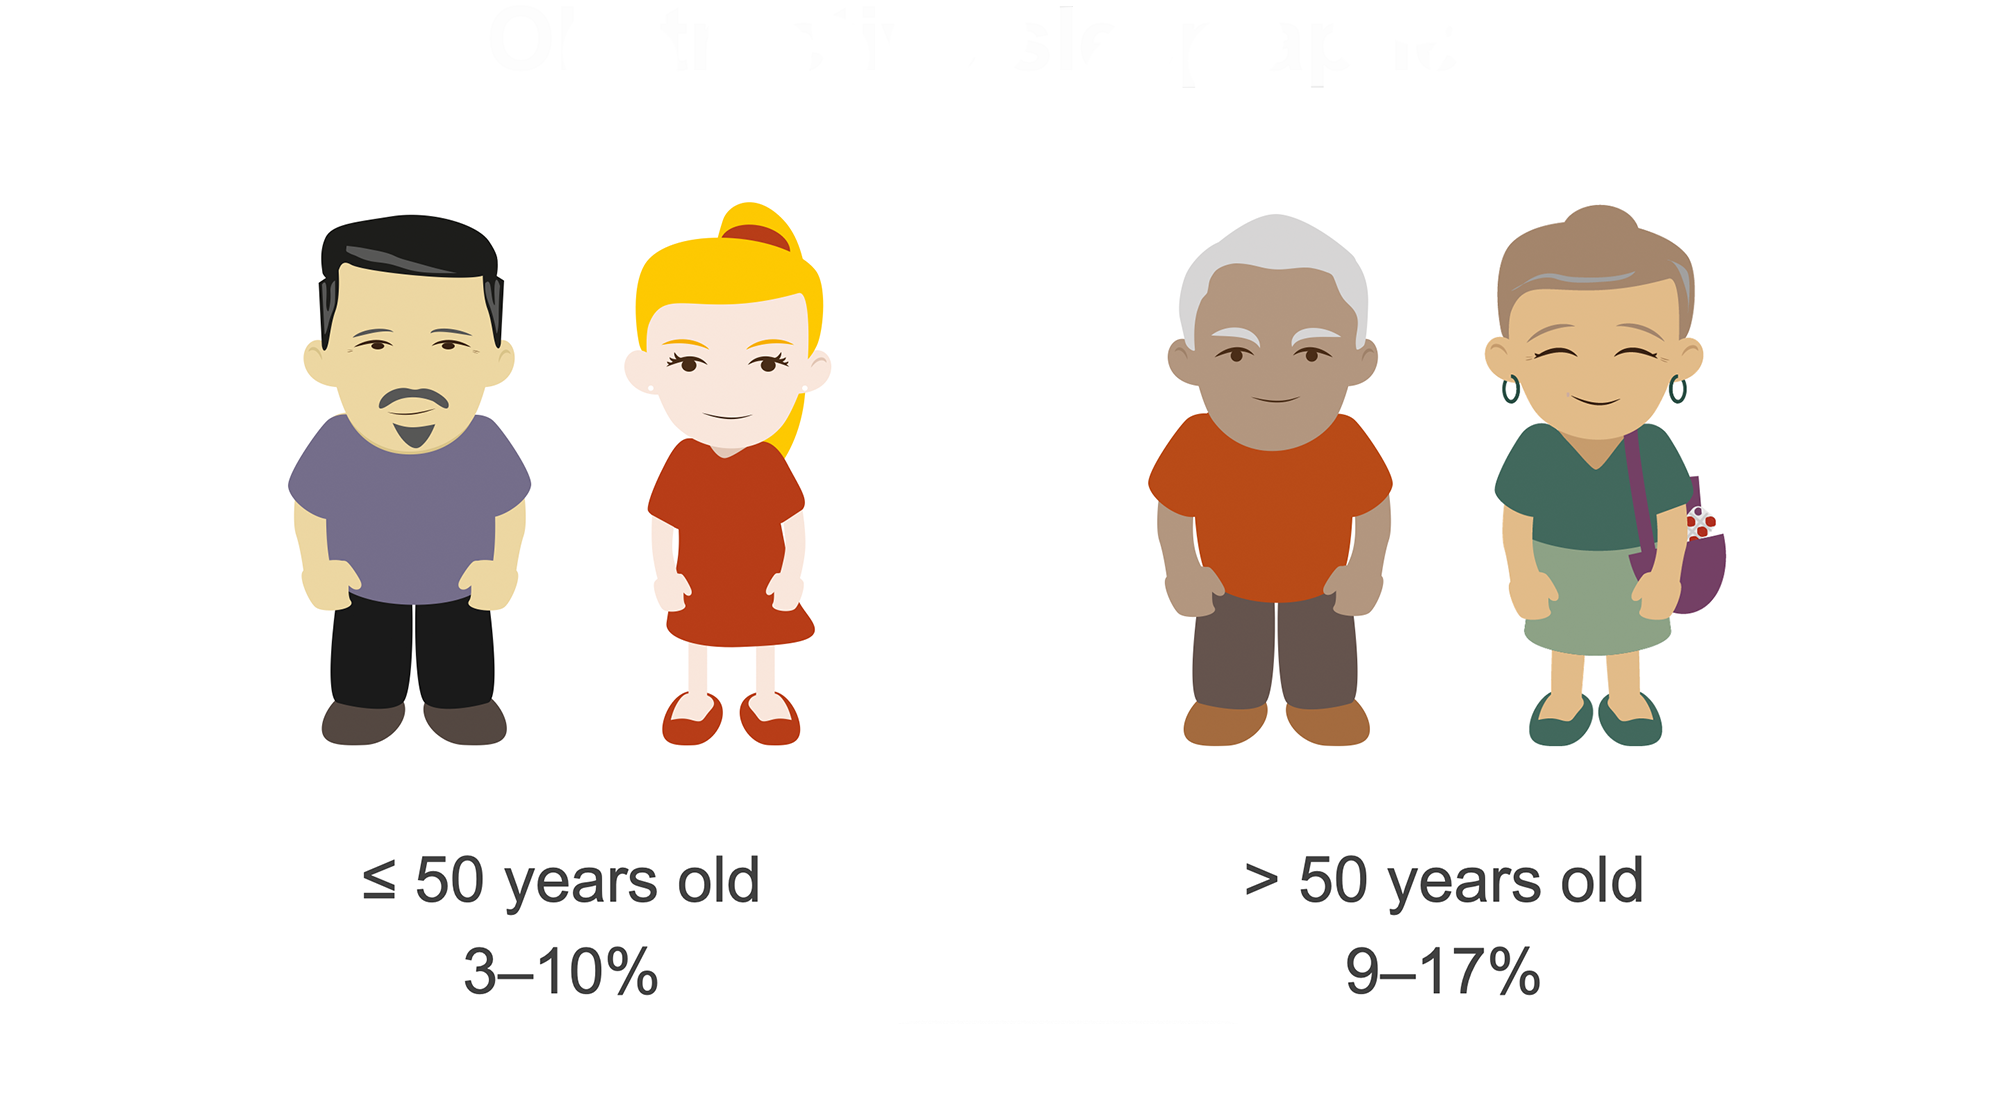 Man and women under fifty and man and women over fifty with prevalence of obstructive sleep apnea. Illustration.